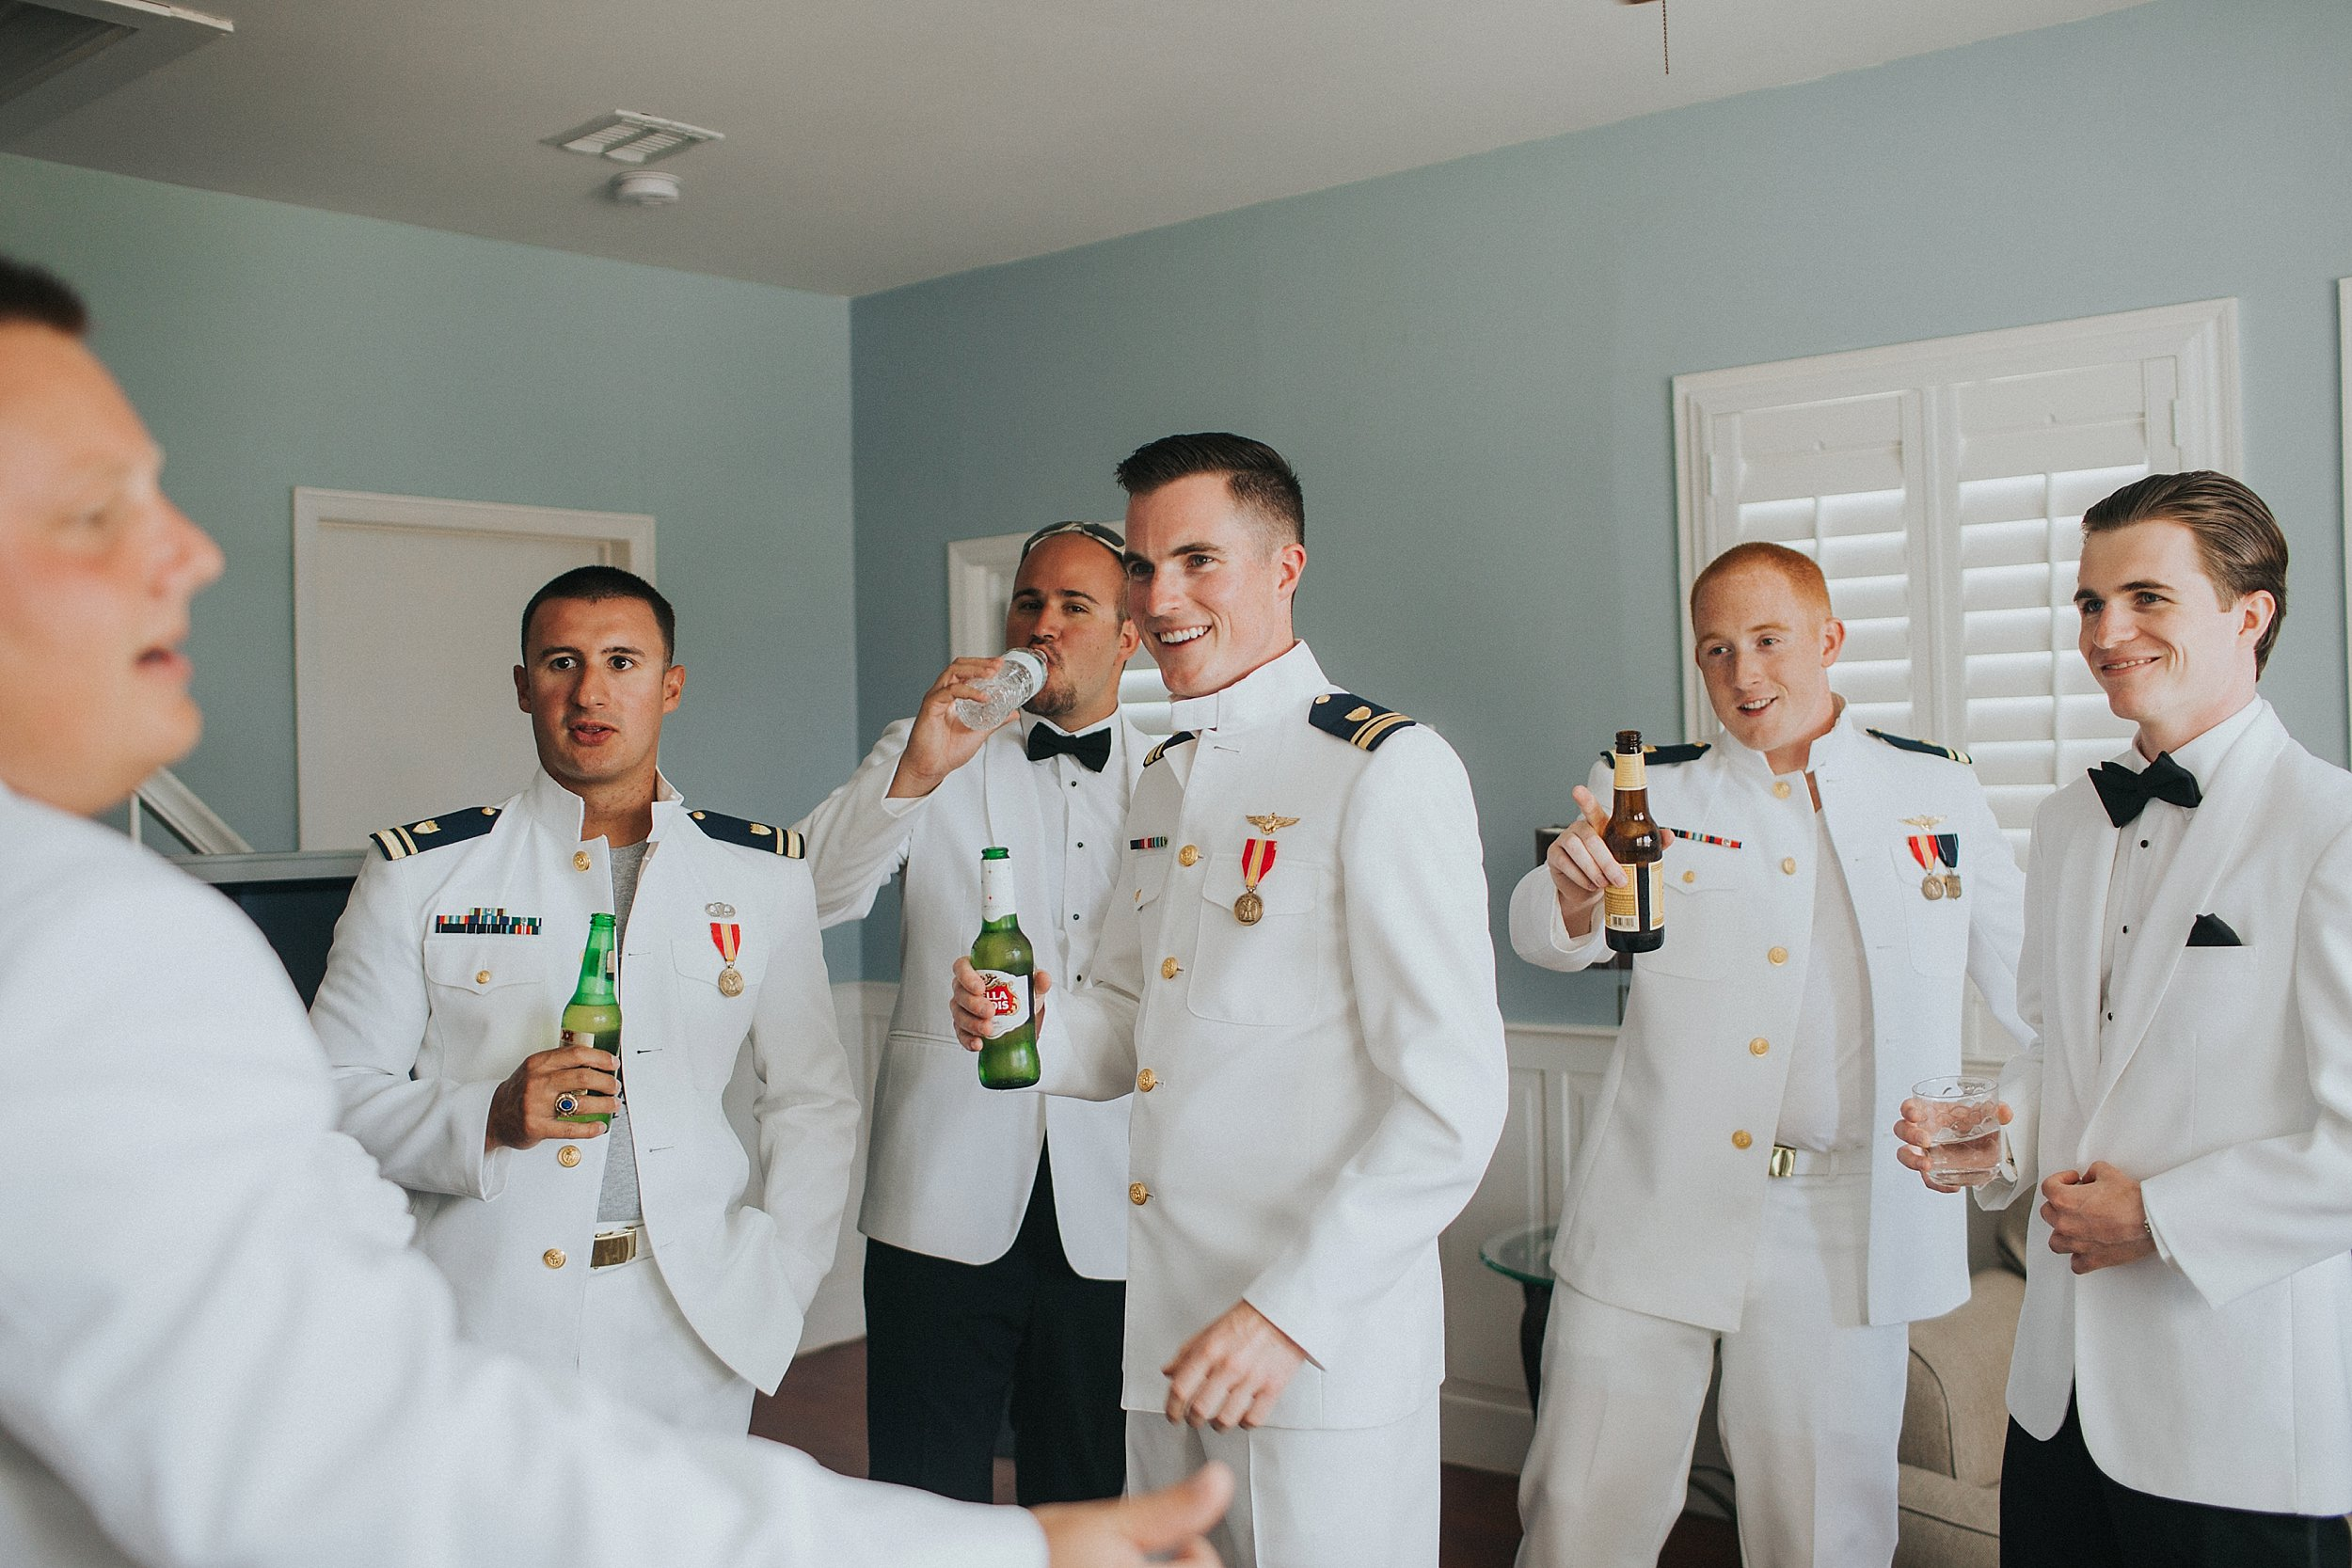 groomsmen having fun on the wedding day